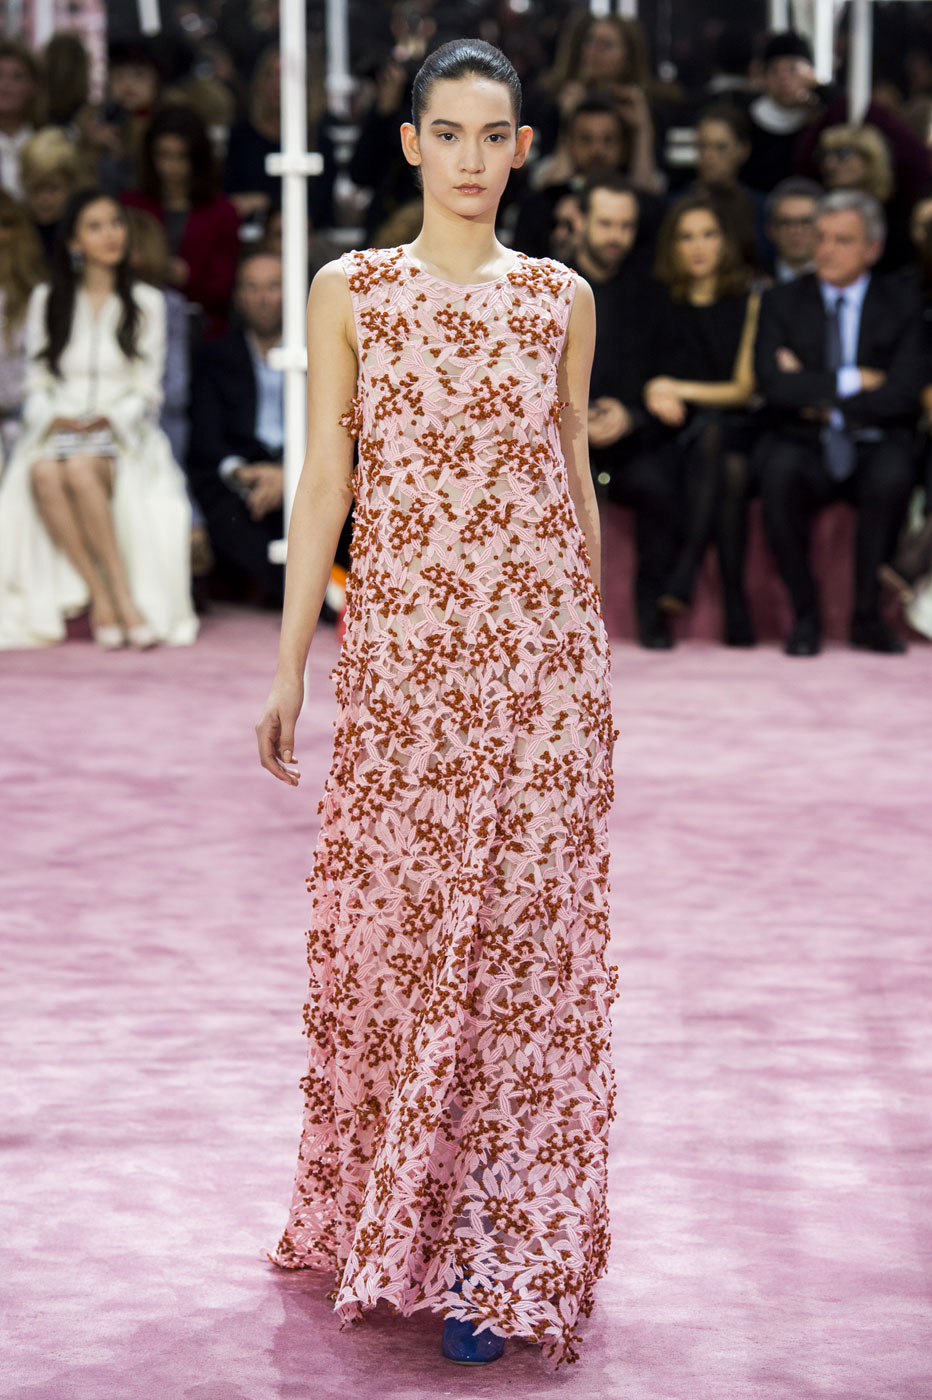 Christian-Dior-fashion-runway-show-haute-couture-paris-spring-summer-2015-the-impression-039